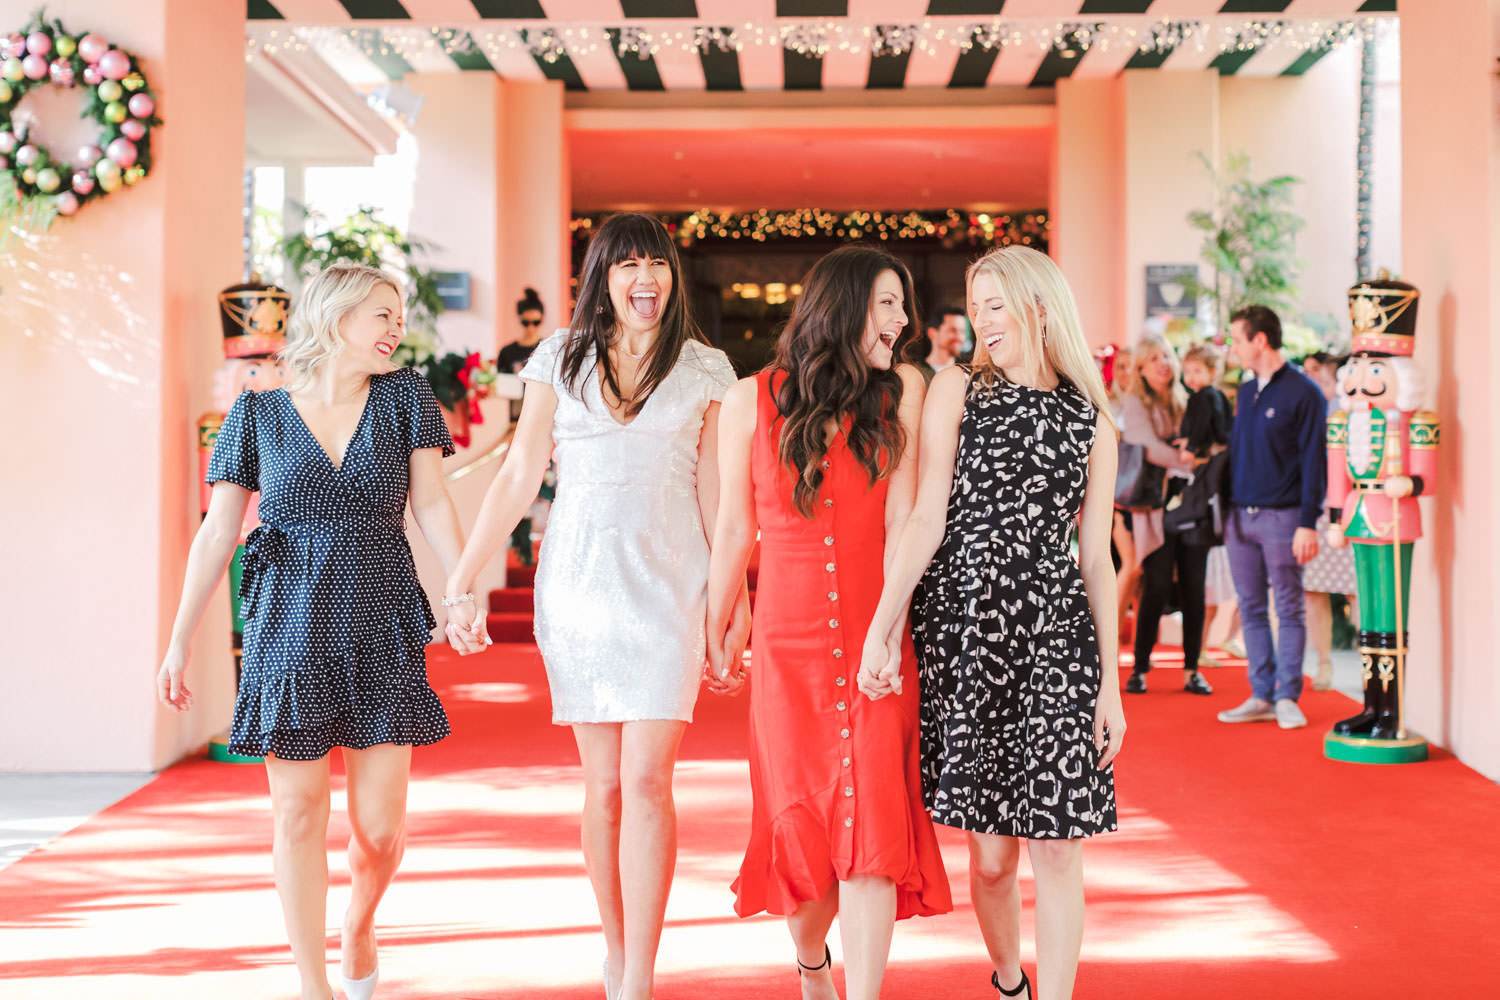 Bride with bridesmaids at Chic Beverly Hills Hotel Bridal Shower during Christmas decorations, Cavin Elizabeth Photography